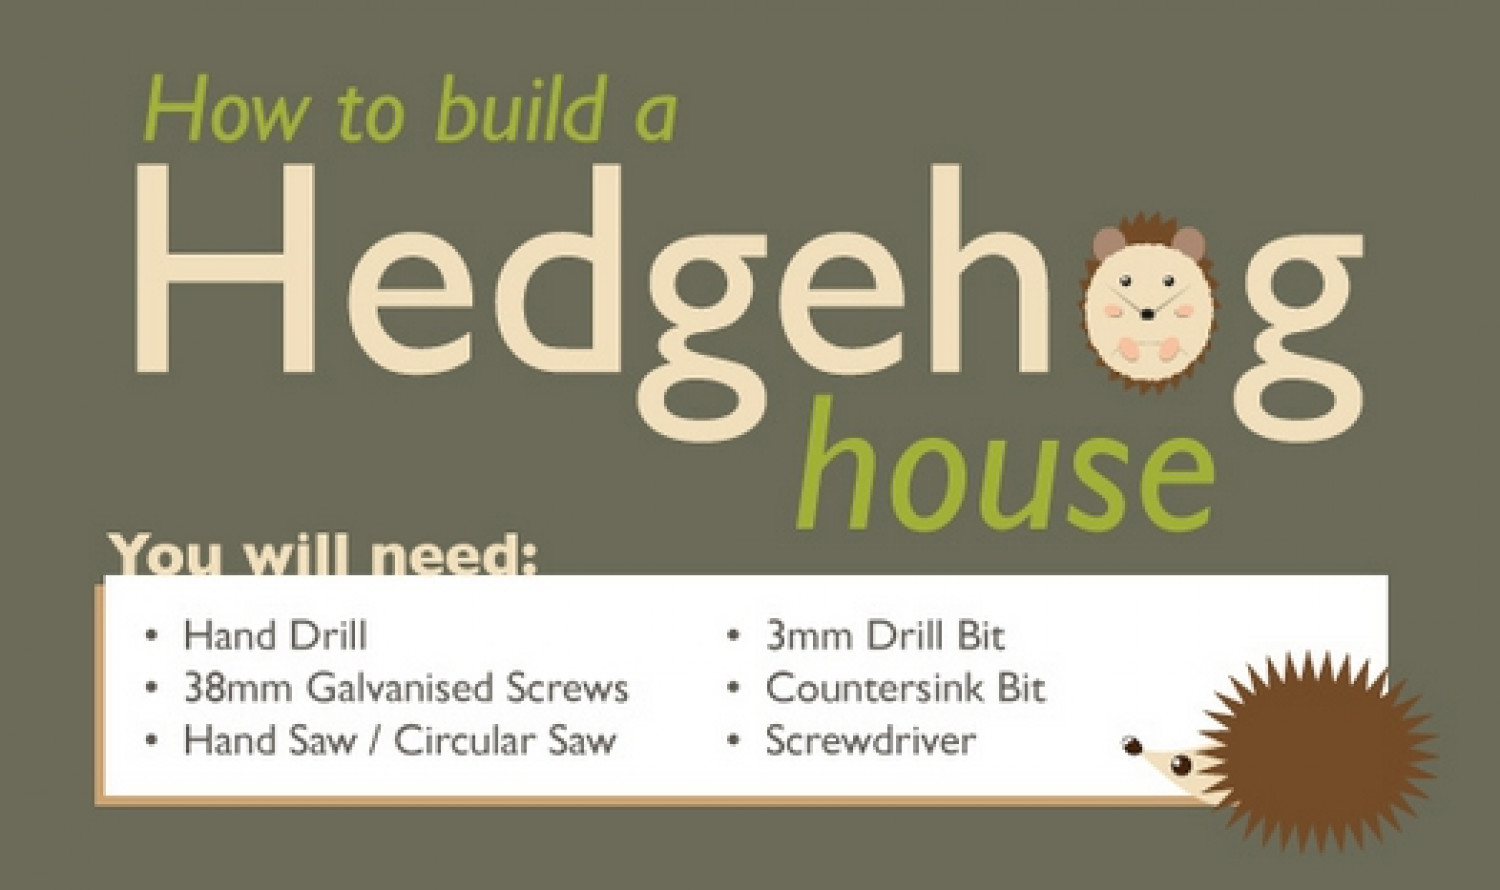 How to Build a Hedgehog House Infographic